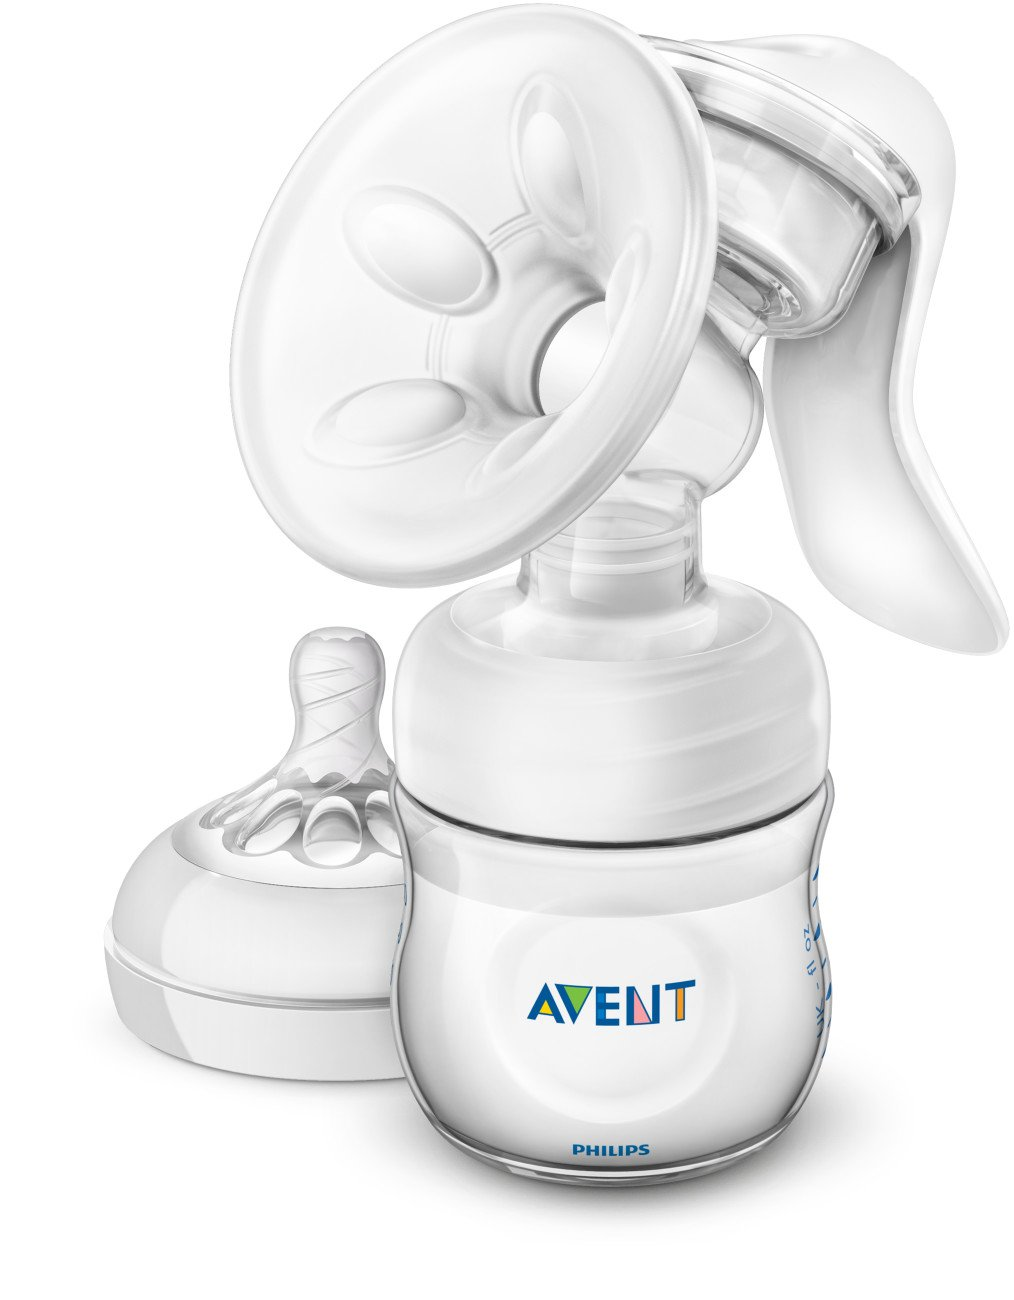 Philips Avent Breast SCF330/30 Pump Manual, Clear by Philips AVENT